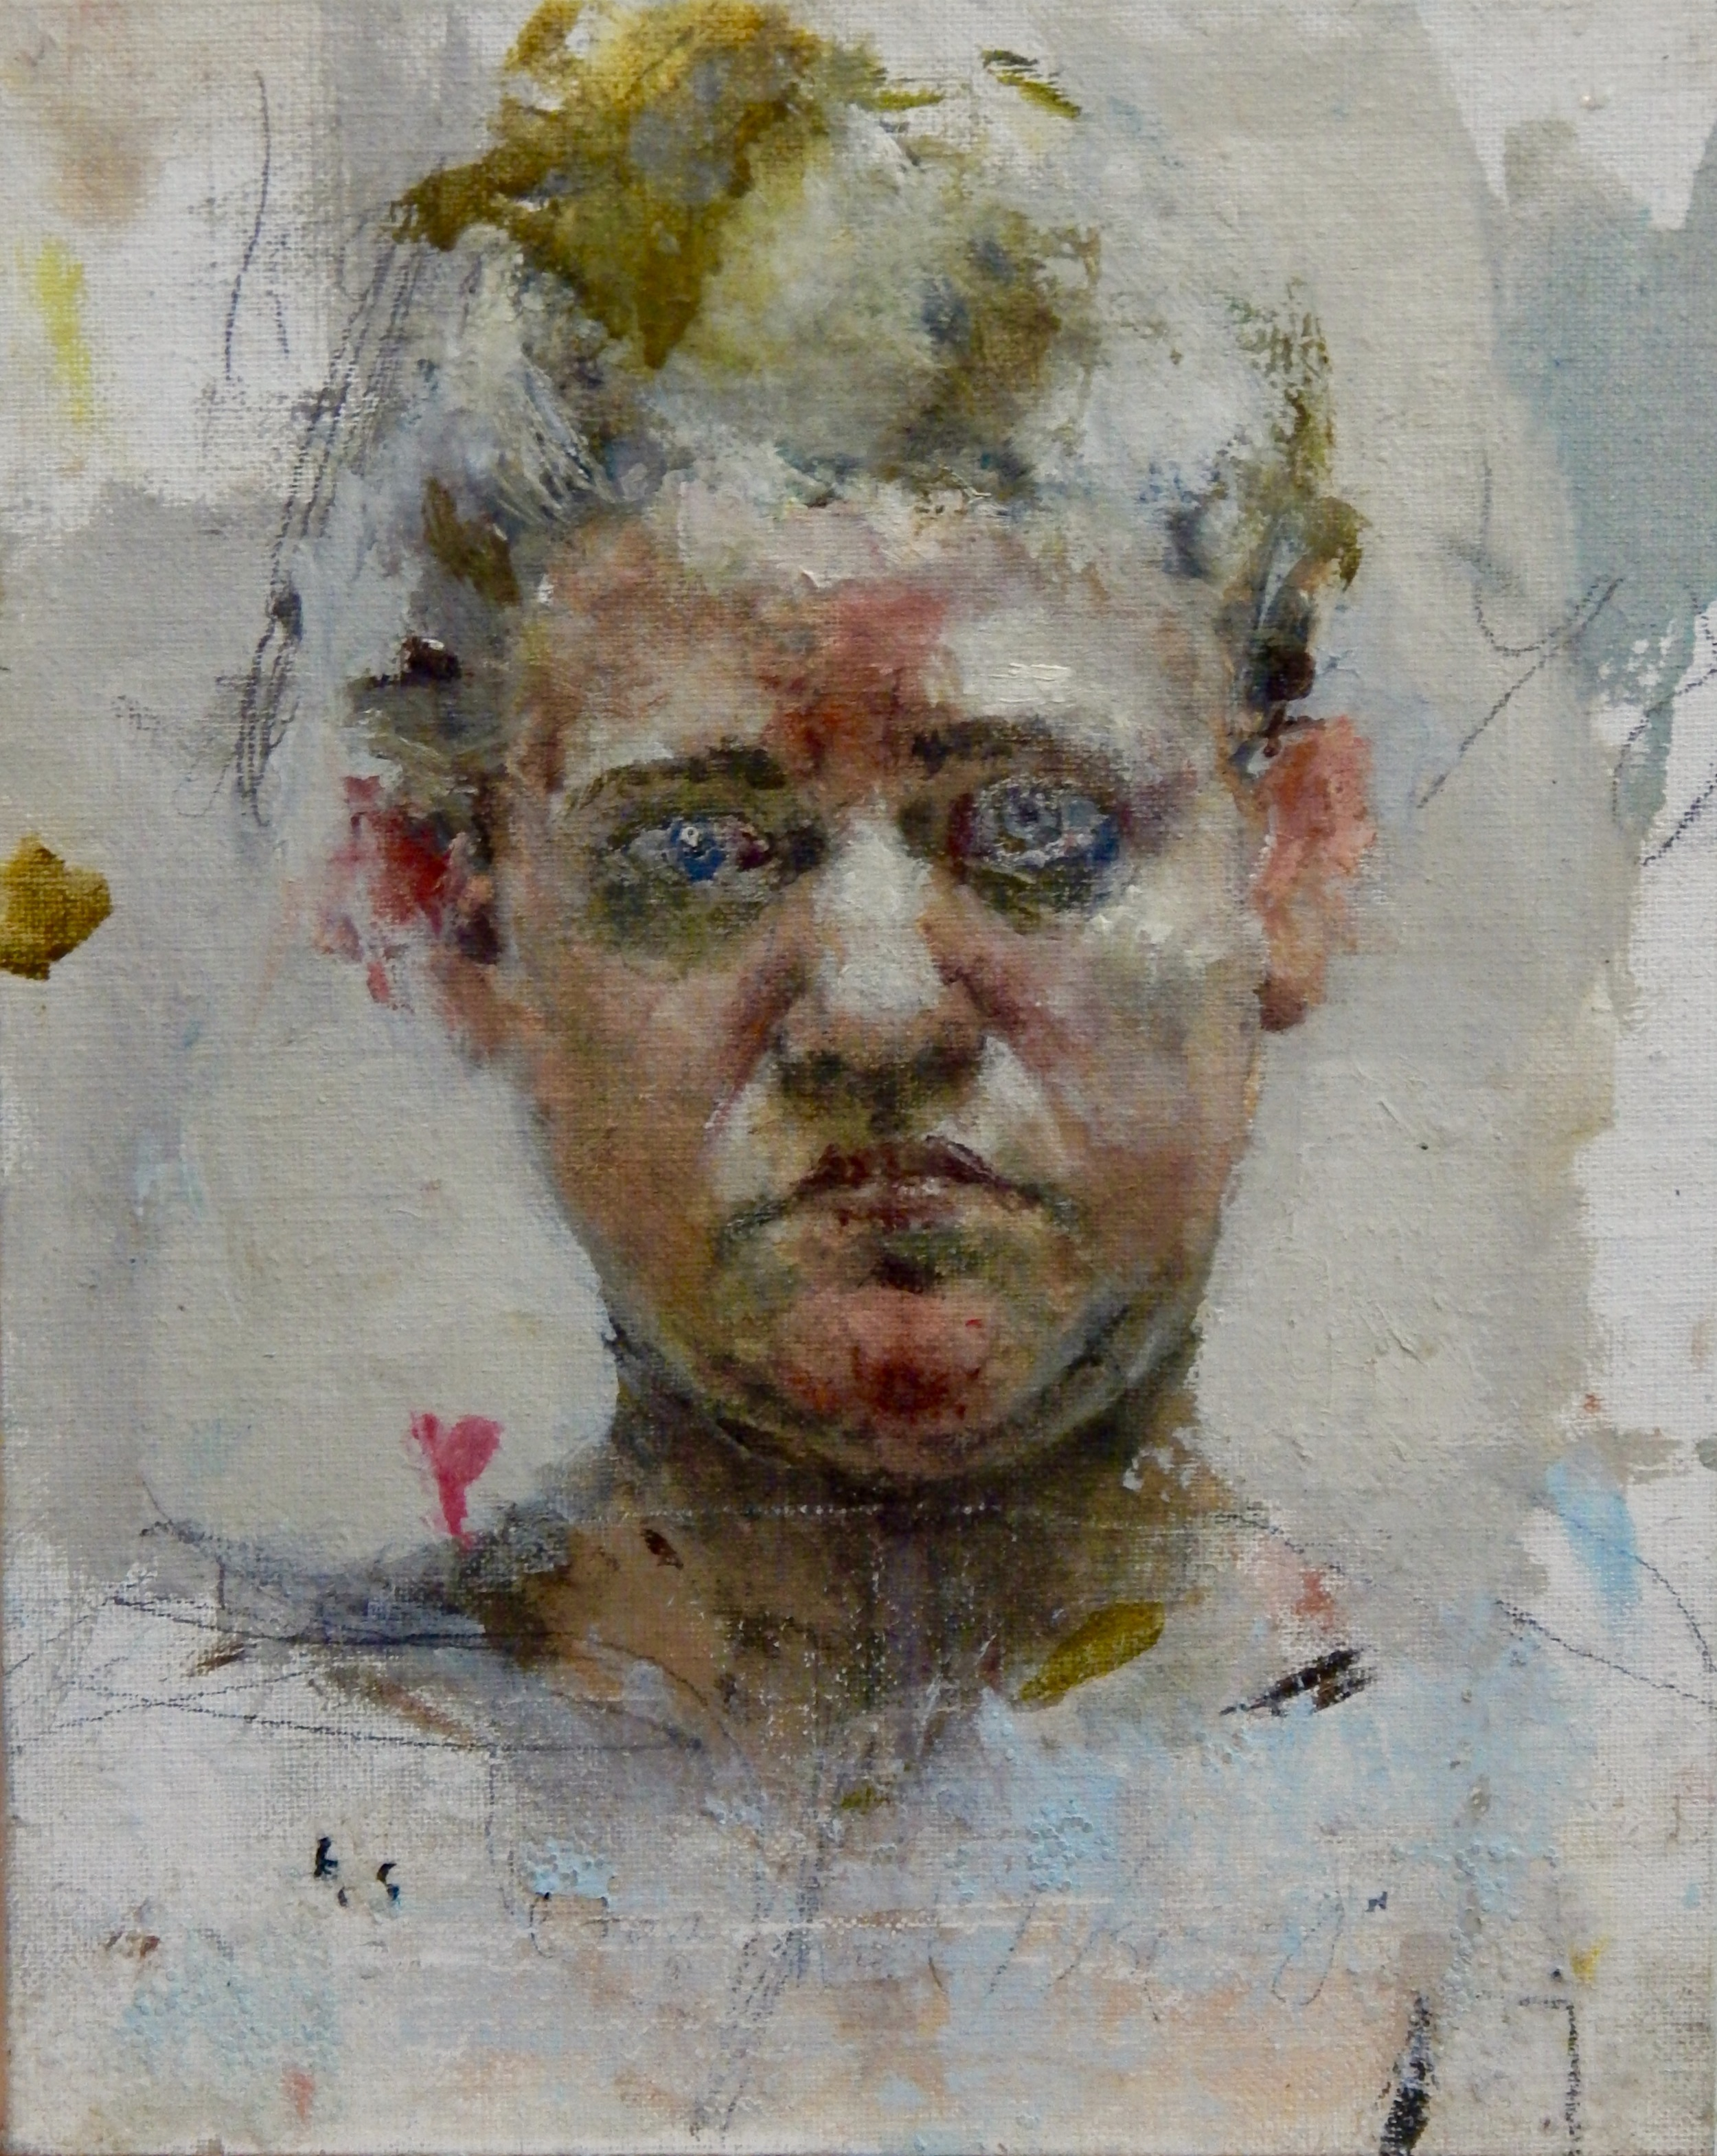 Self-Portrait Study